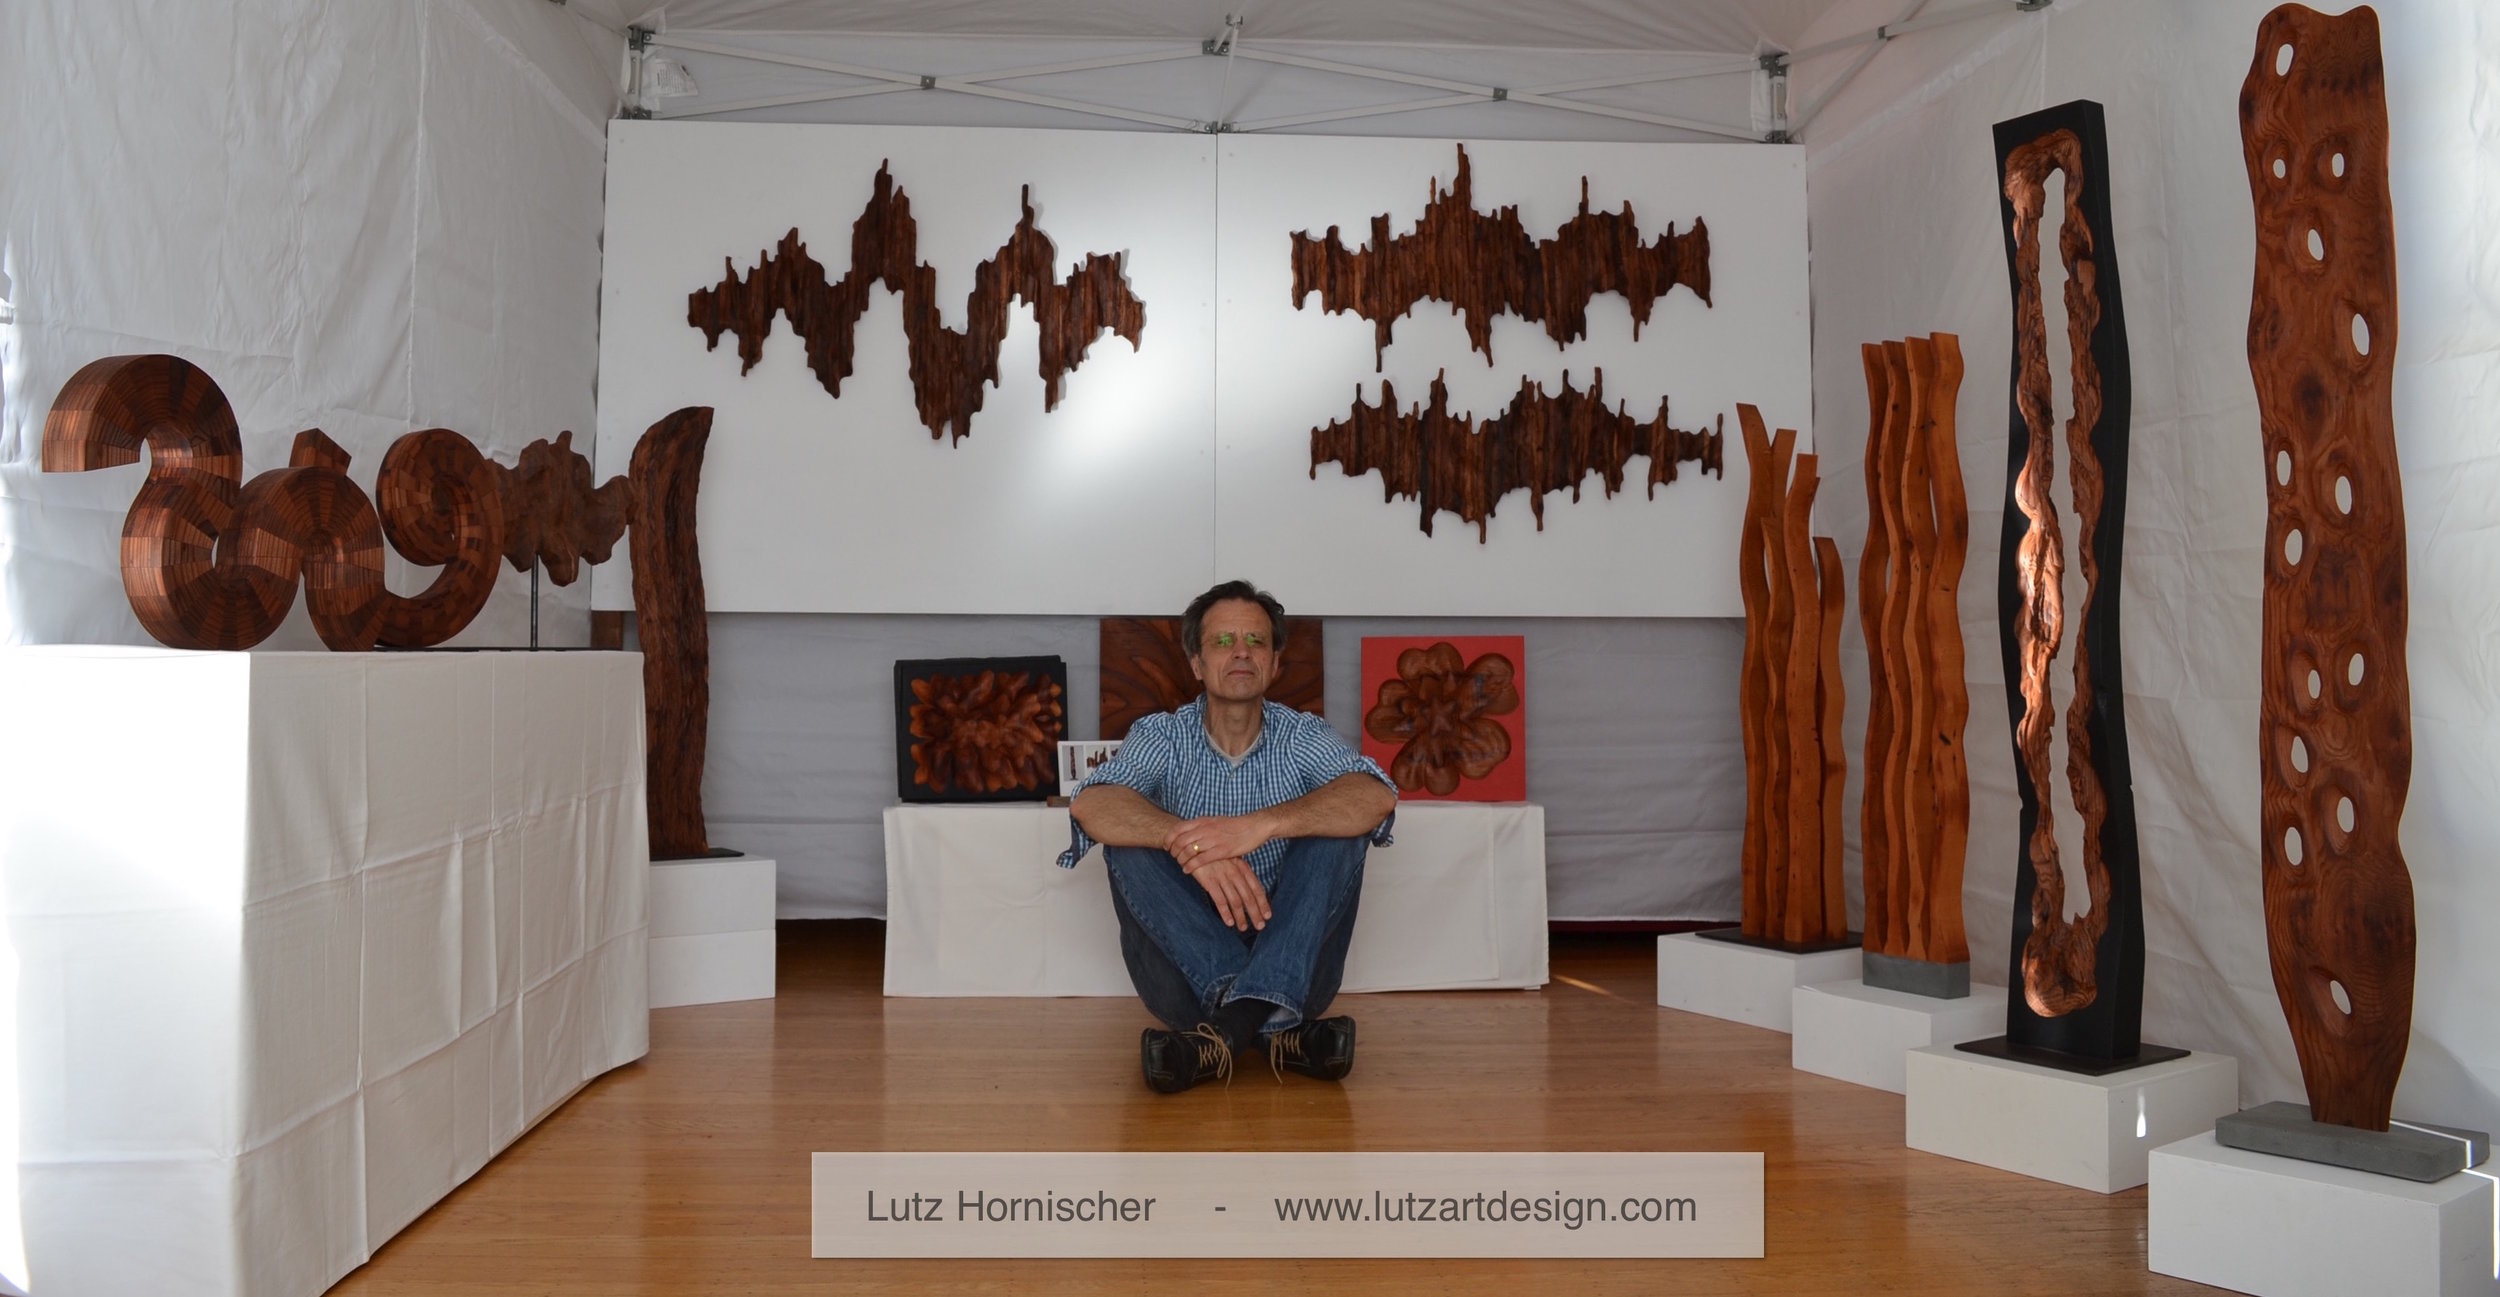 East Bay Open Studios 2018 - contemporary wood sculptures and wall art by Lutz Hornischer